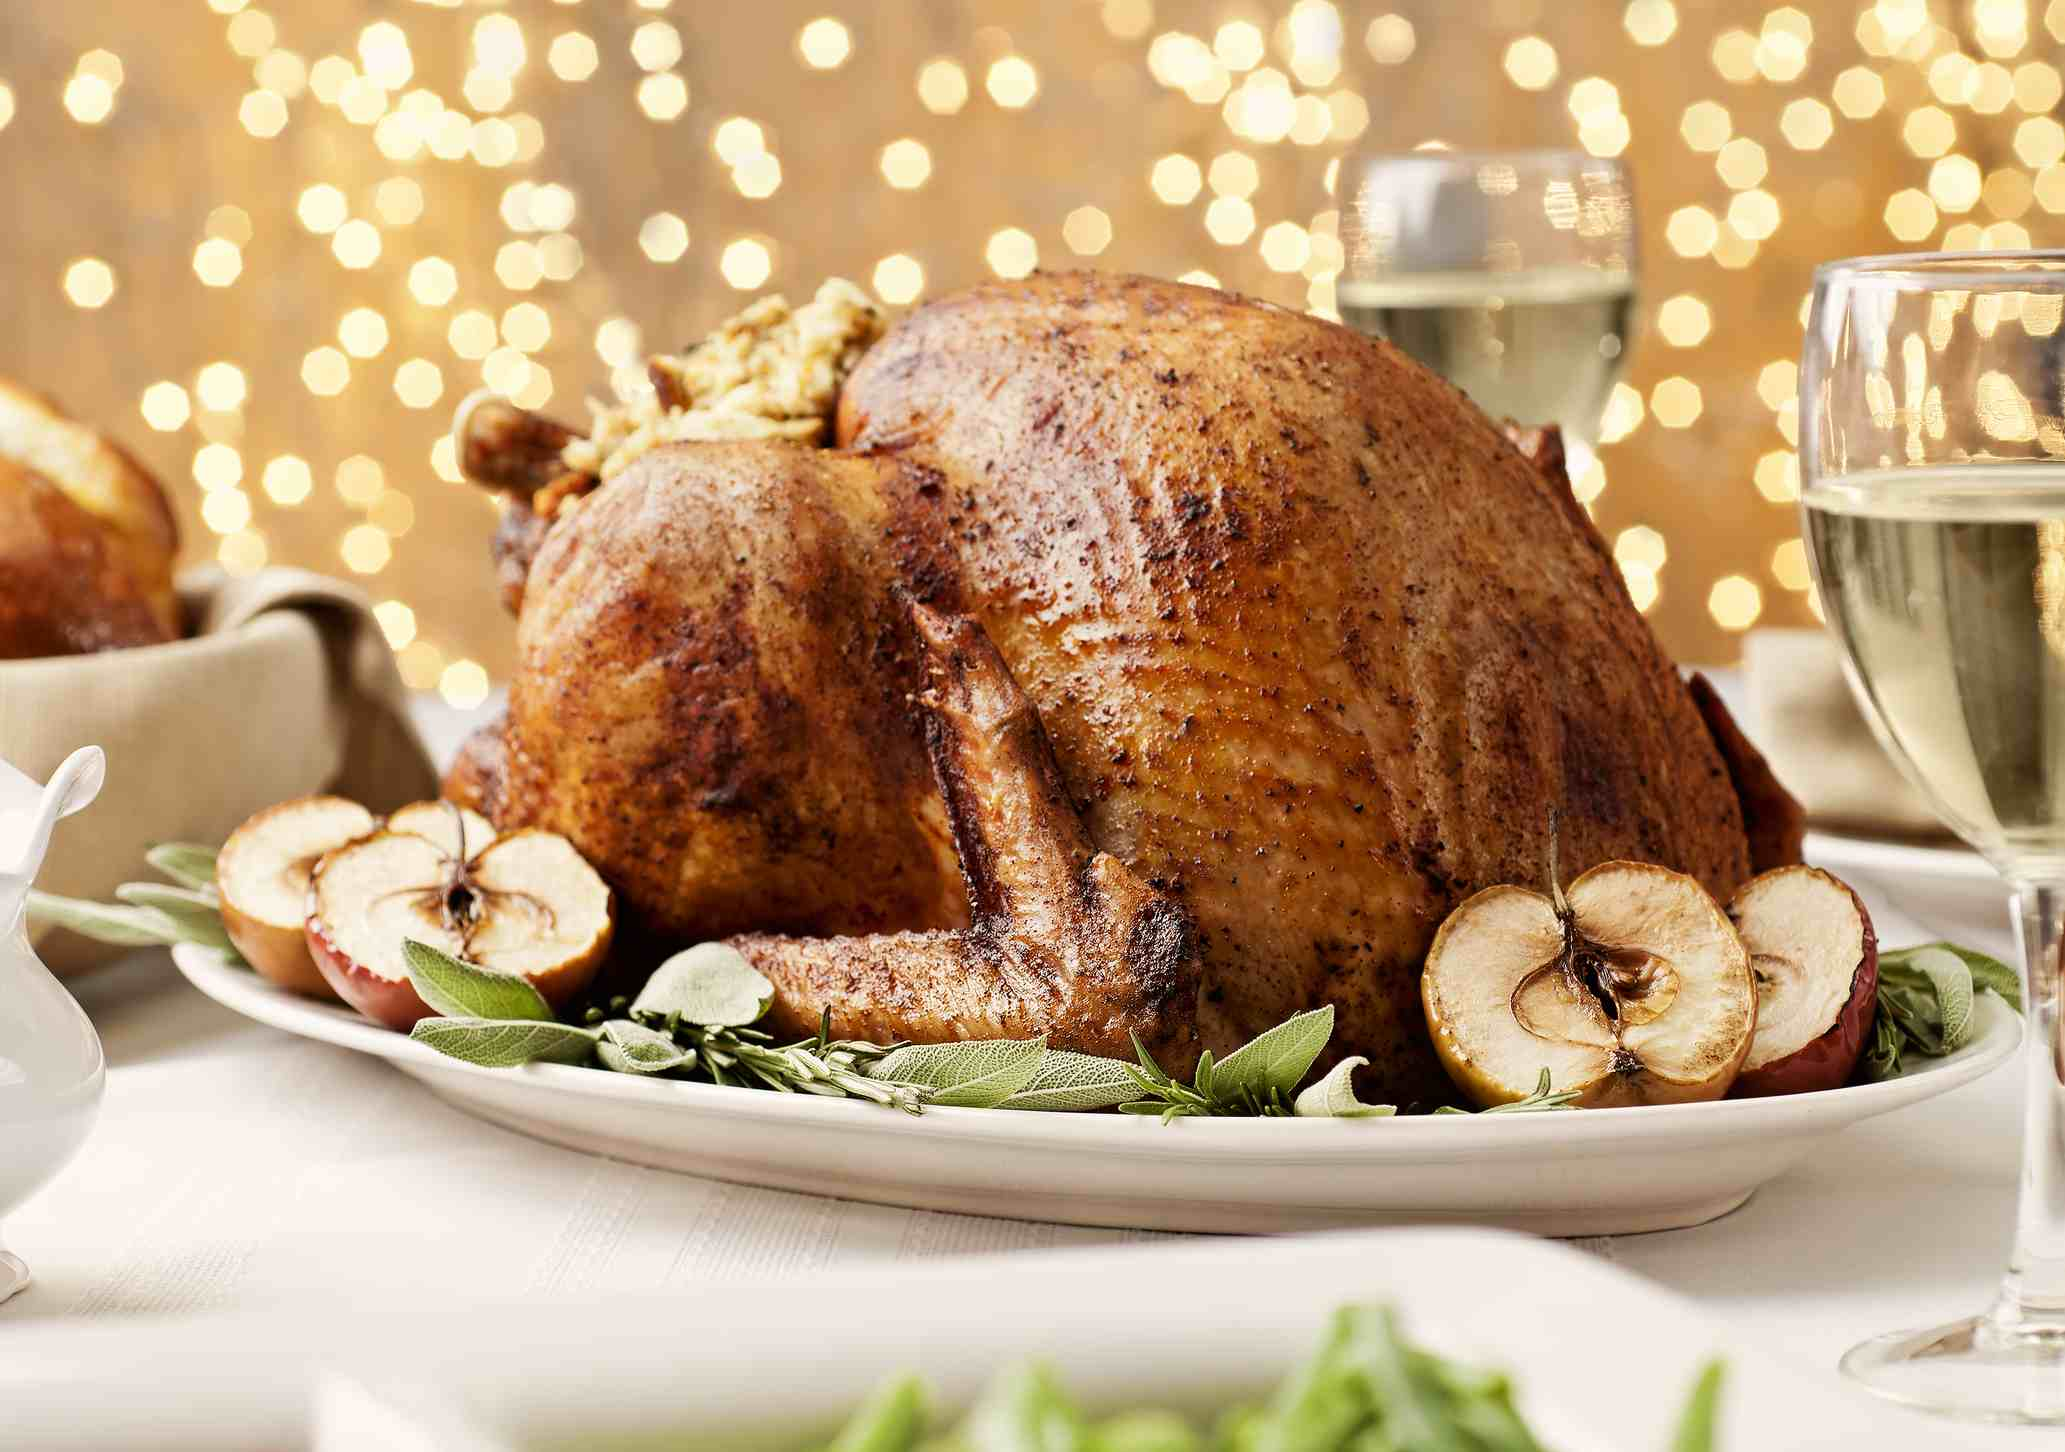 Oven-roasted Thanksgiving turkey on a platter with apples